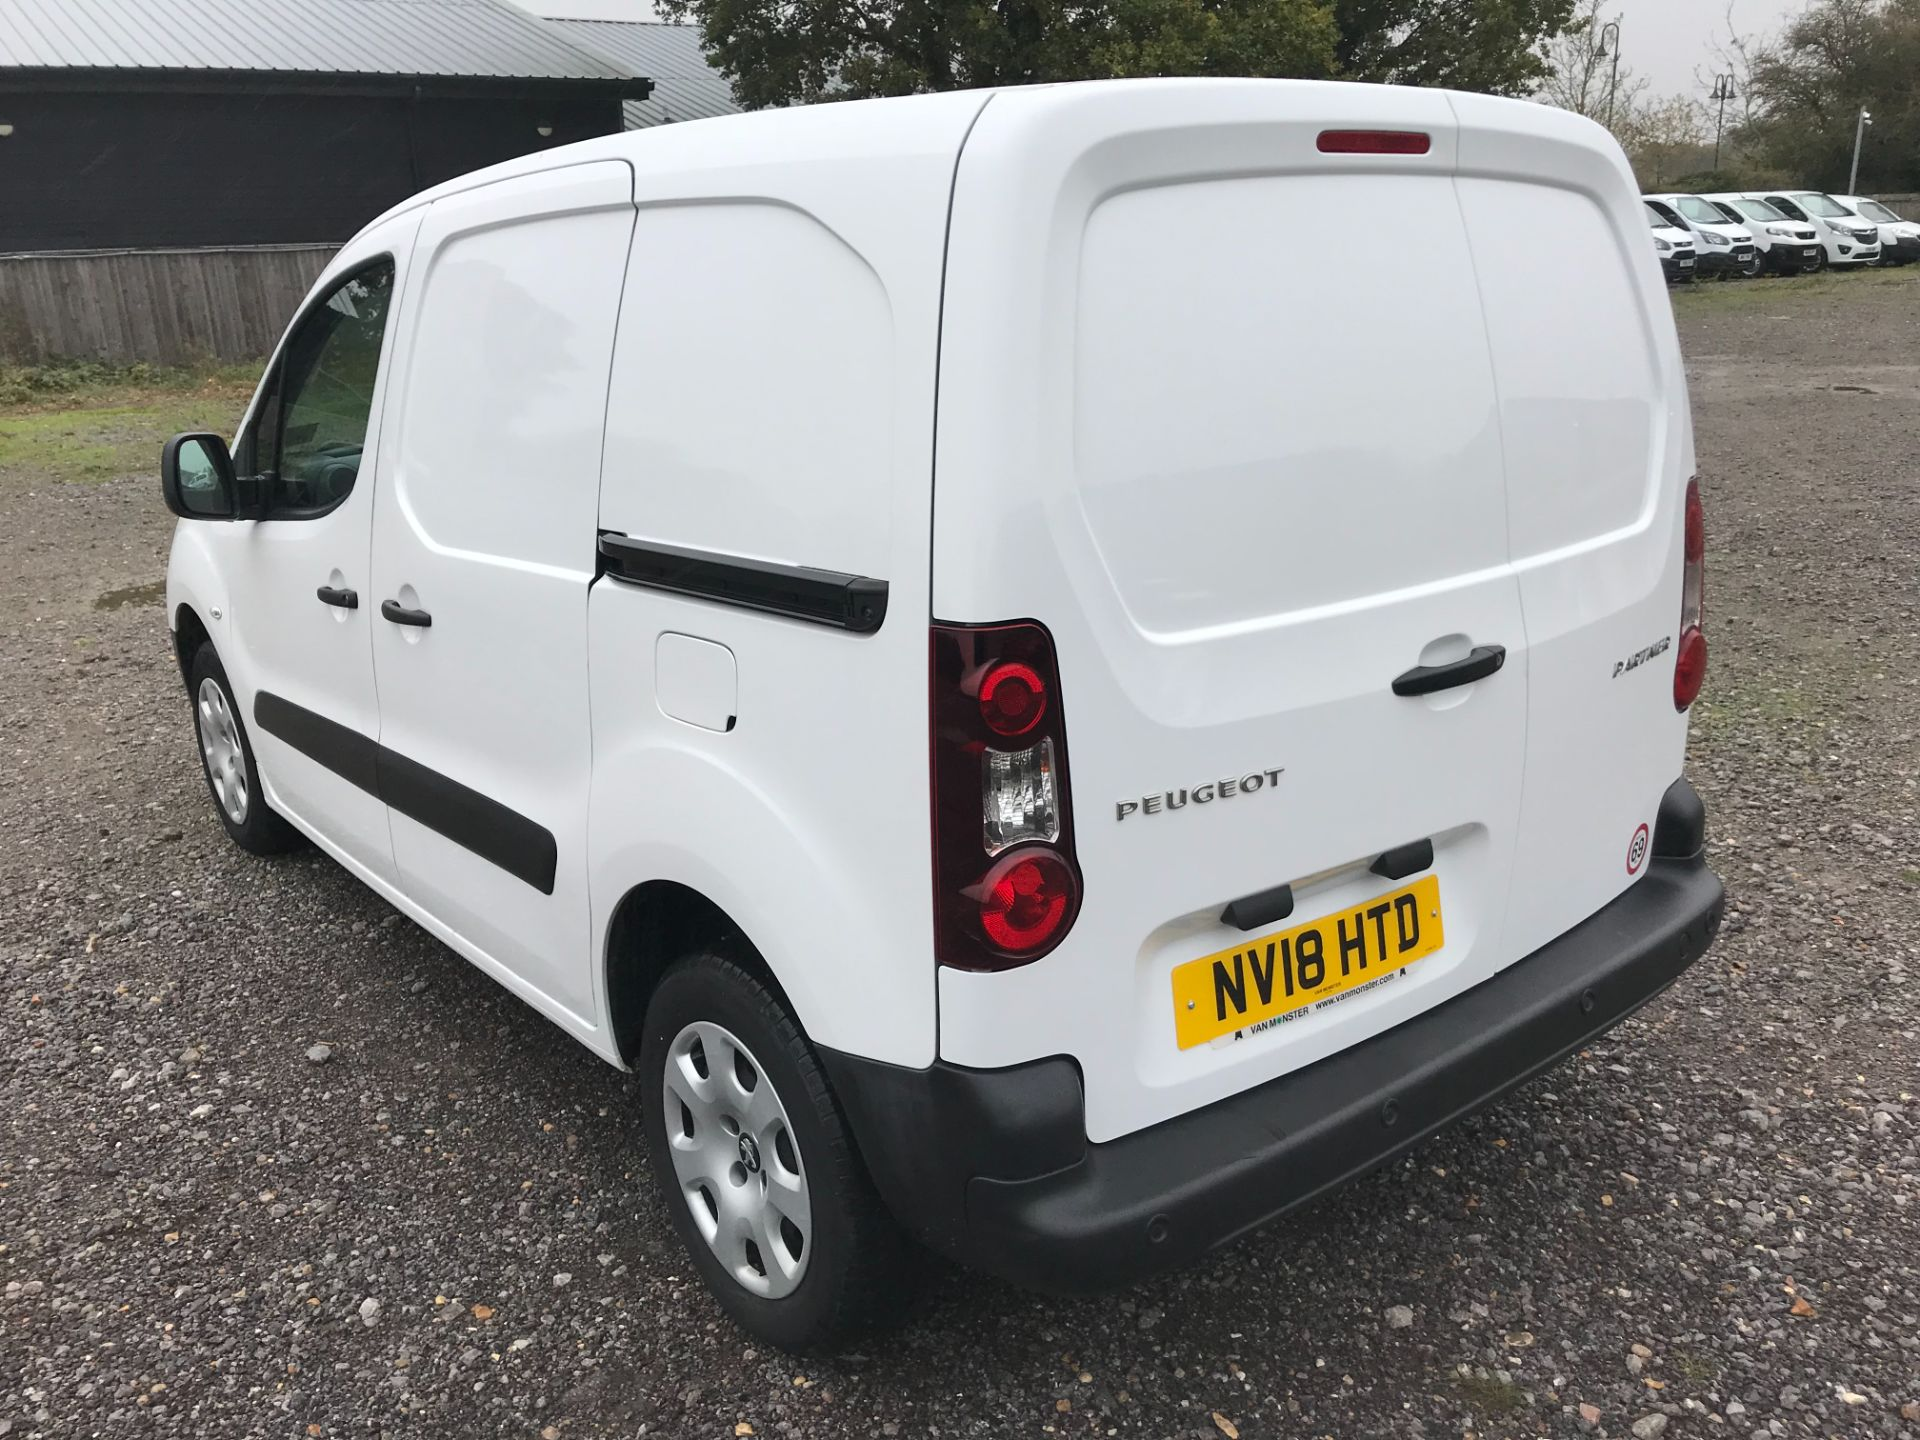 2018 Peugeot Partner 850 1.6 Bluehdi 100 Professional Van [Non Ss] *Restricted to 70 MPH* Euro 6 (NV18HTD) Image 6